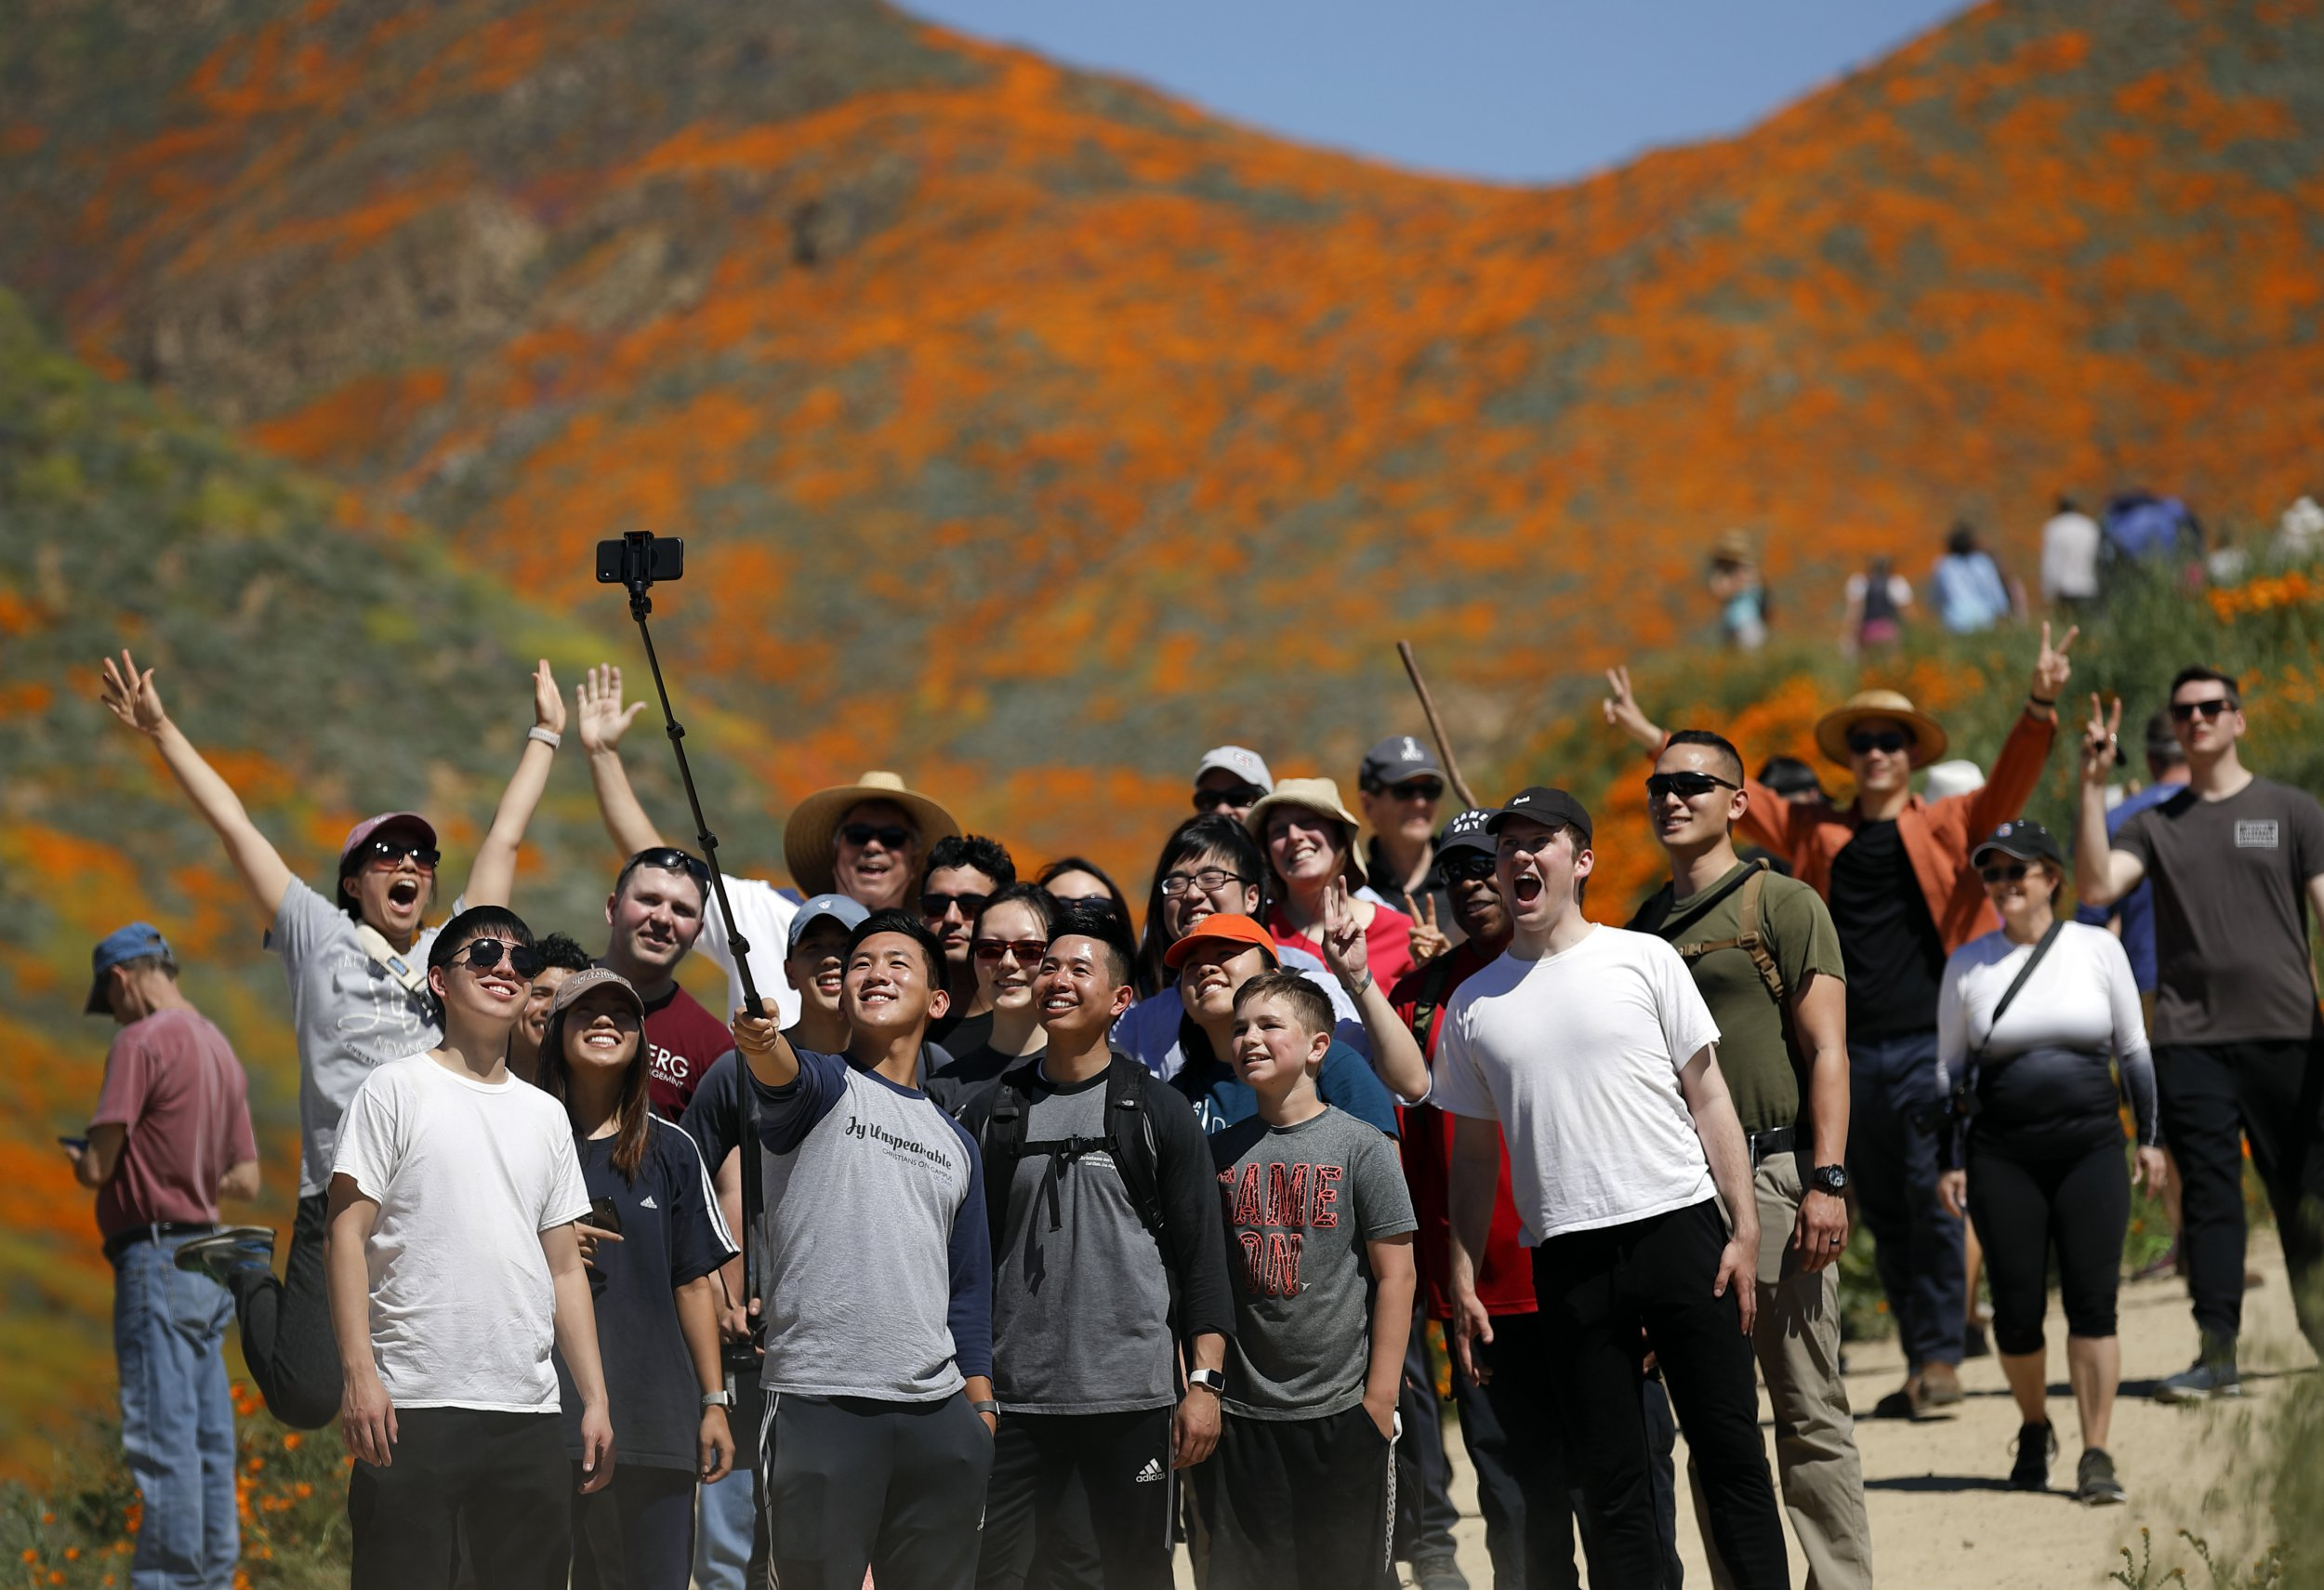 People pose for a picture among wildflowers in bloom Monday, March 18, 2019, in Lake Elsinore, Calif. About 150,000 people flocked over the weekend to see this year's rain-fed flaming orange patches of poppies lighting up the hillsides near Lake Elsinore, a city of about 60,000 residents. The crowds became so bad Sunday that Lake Elsinore officials closed access to poppy-blanketed Walker Canyon. By Monday the #poppyshutdown announced by the city on Twitter was over and the road to the canyon was re-opened. (AP Photo/Gregory Bull)